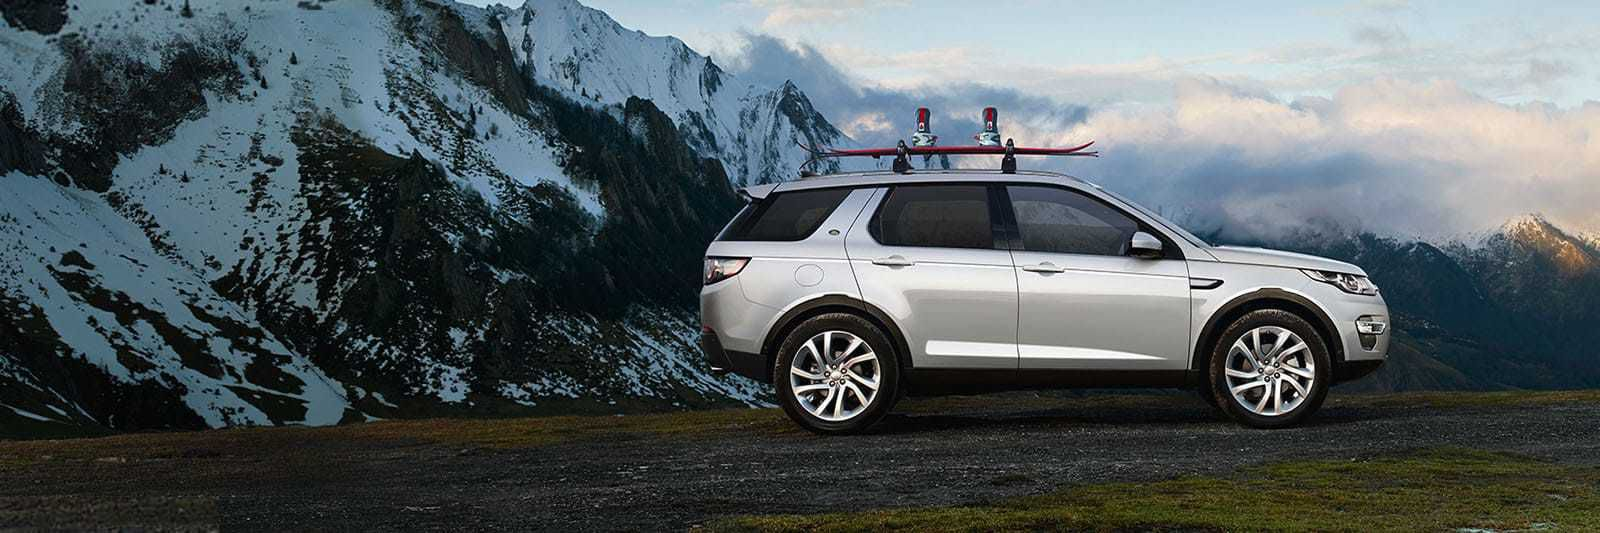 accessories inspirational rover landrover velar features of amp land range